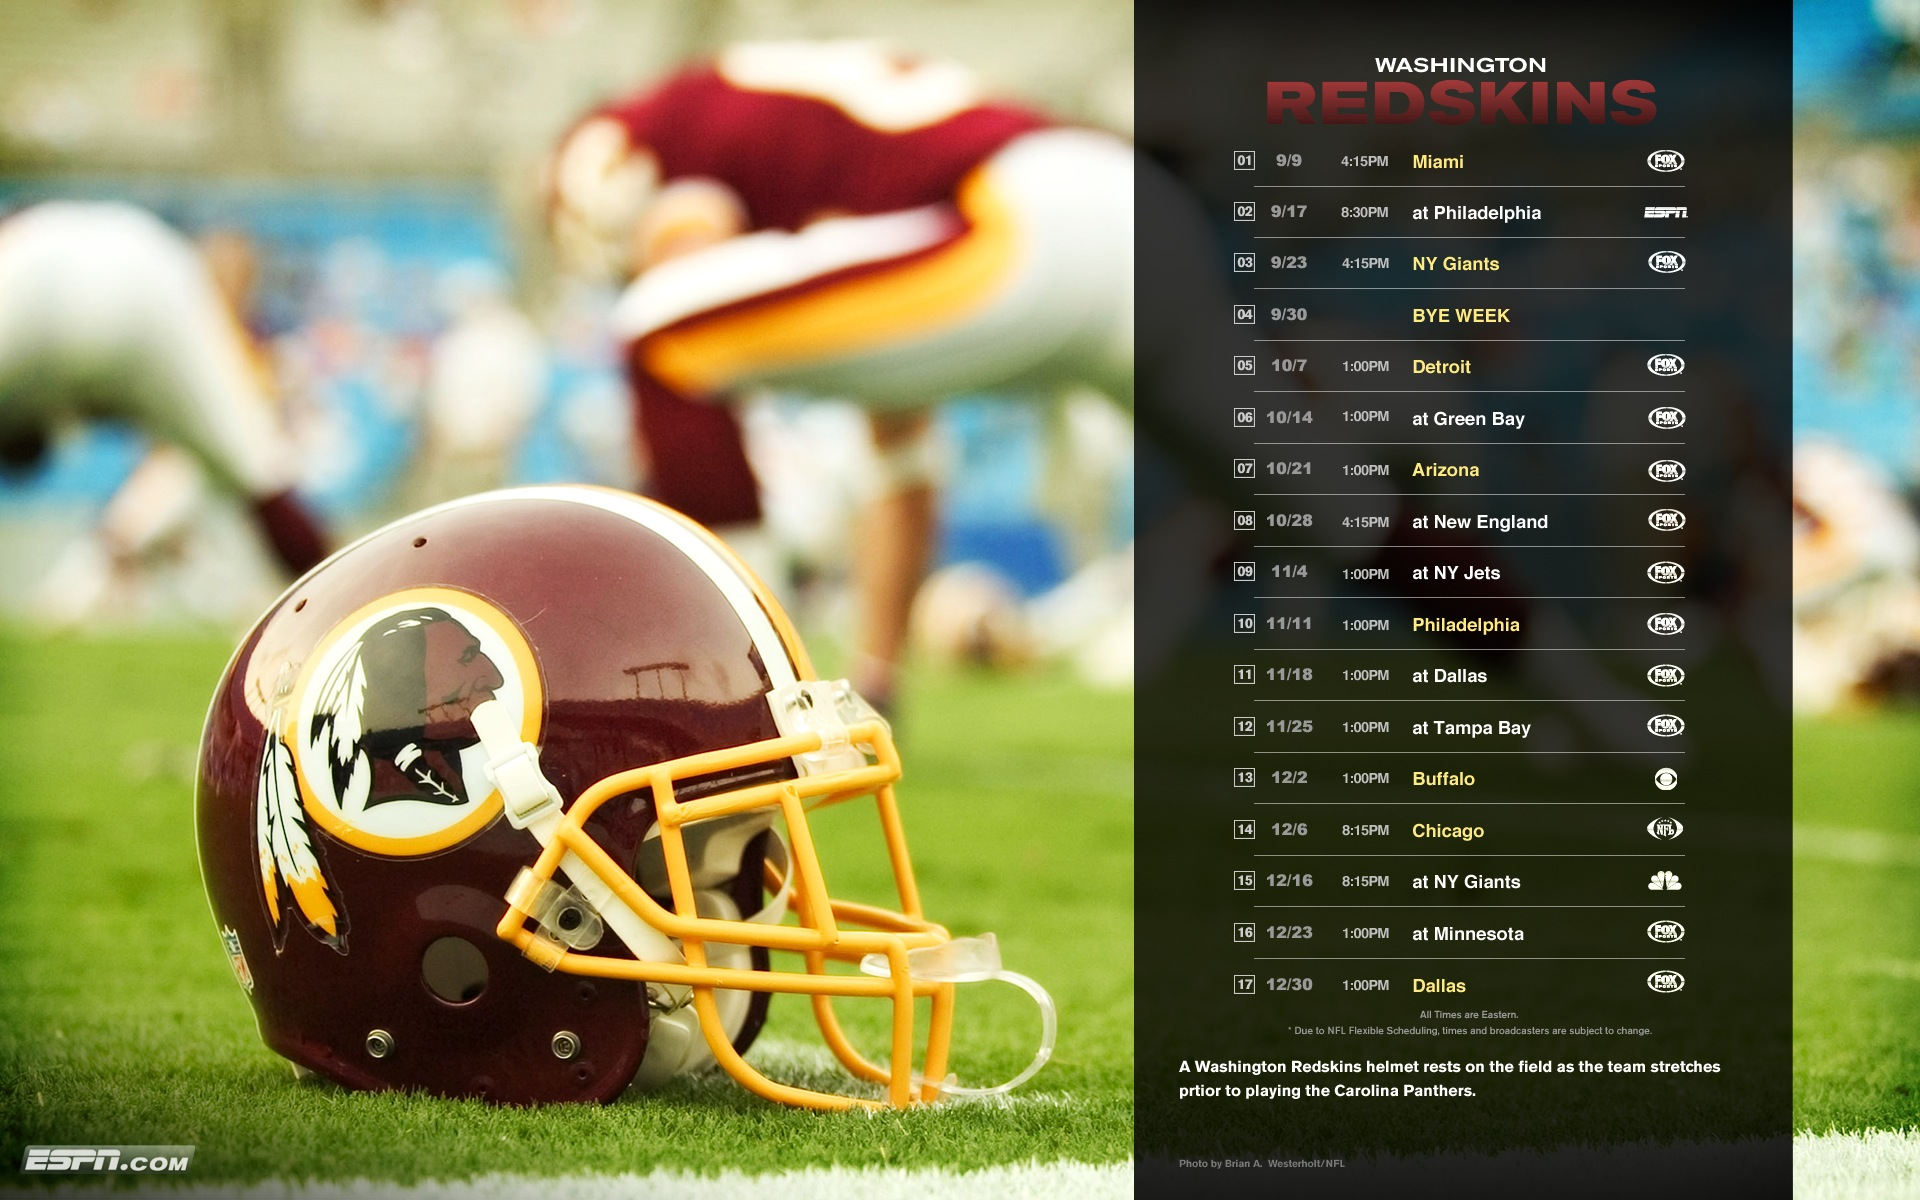 Washington Redskins wallpaper washington redskins wallpaper 1920x1200